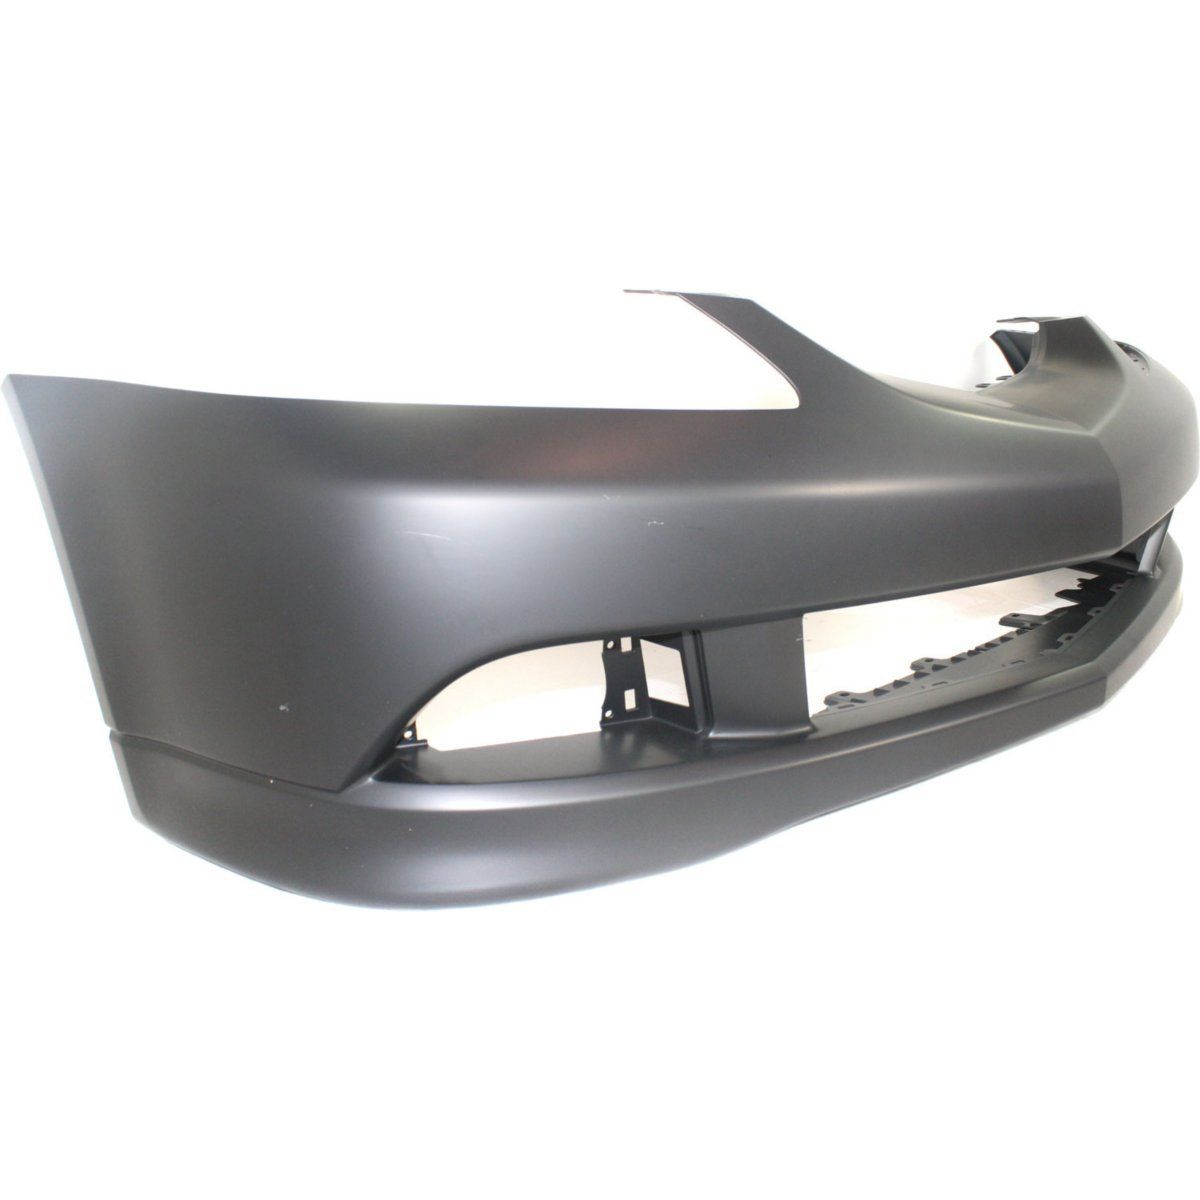 Awesome Front Bumper Cover For 2005-2006 Acura RSX Primed